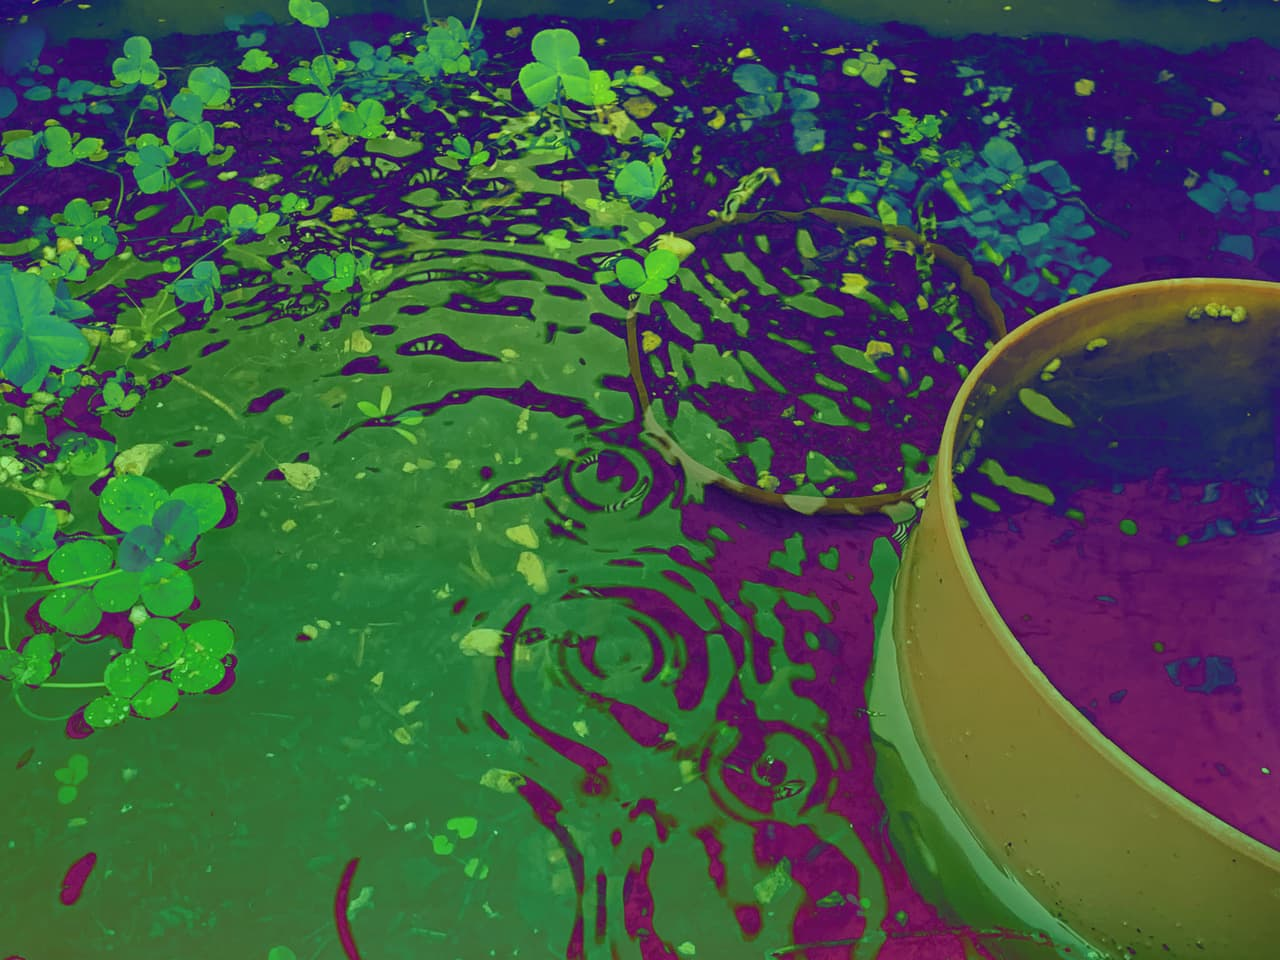 raindrops reflected on a surface with psychedelic colors